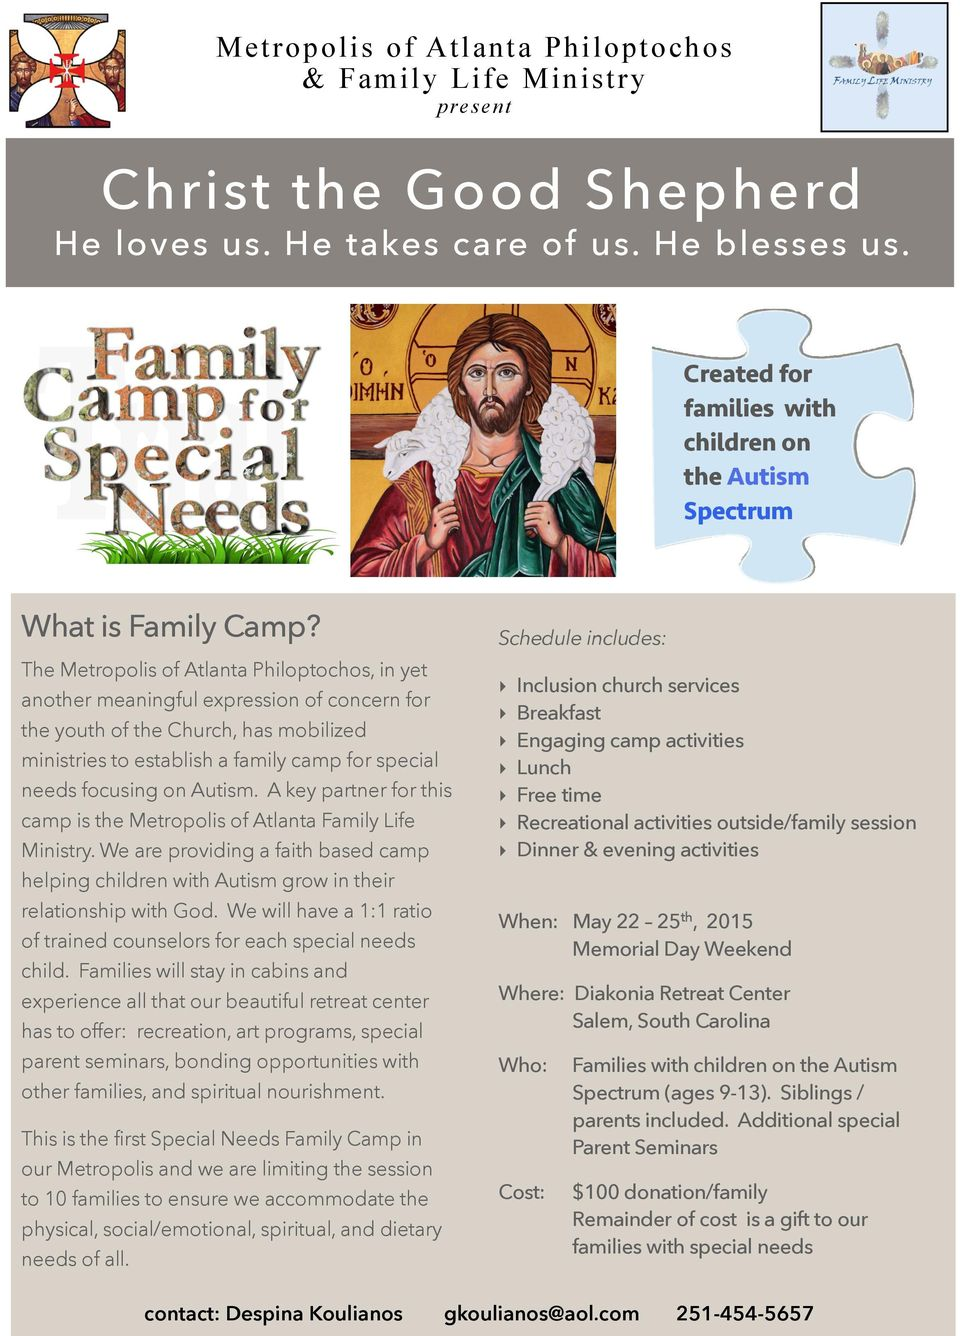 Schedule includes: The Metropolis of Atlanta Philoptochos, in yet another meaningful expression of concern for the youth of the Church, has mobilized ministries to establish a family camp for special